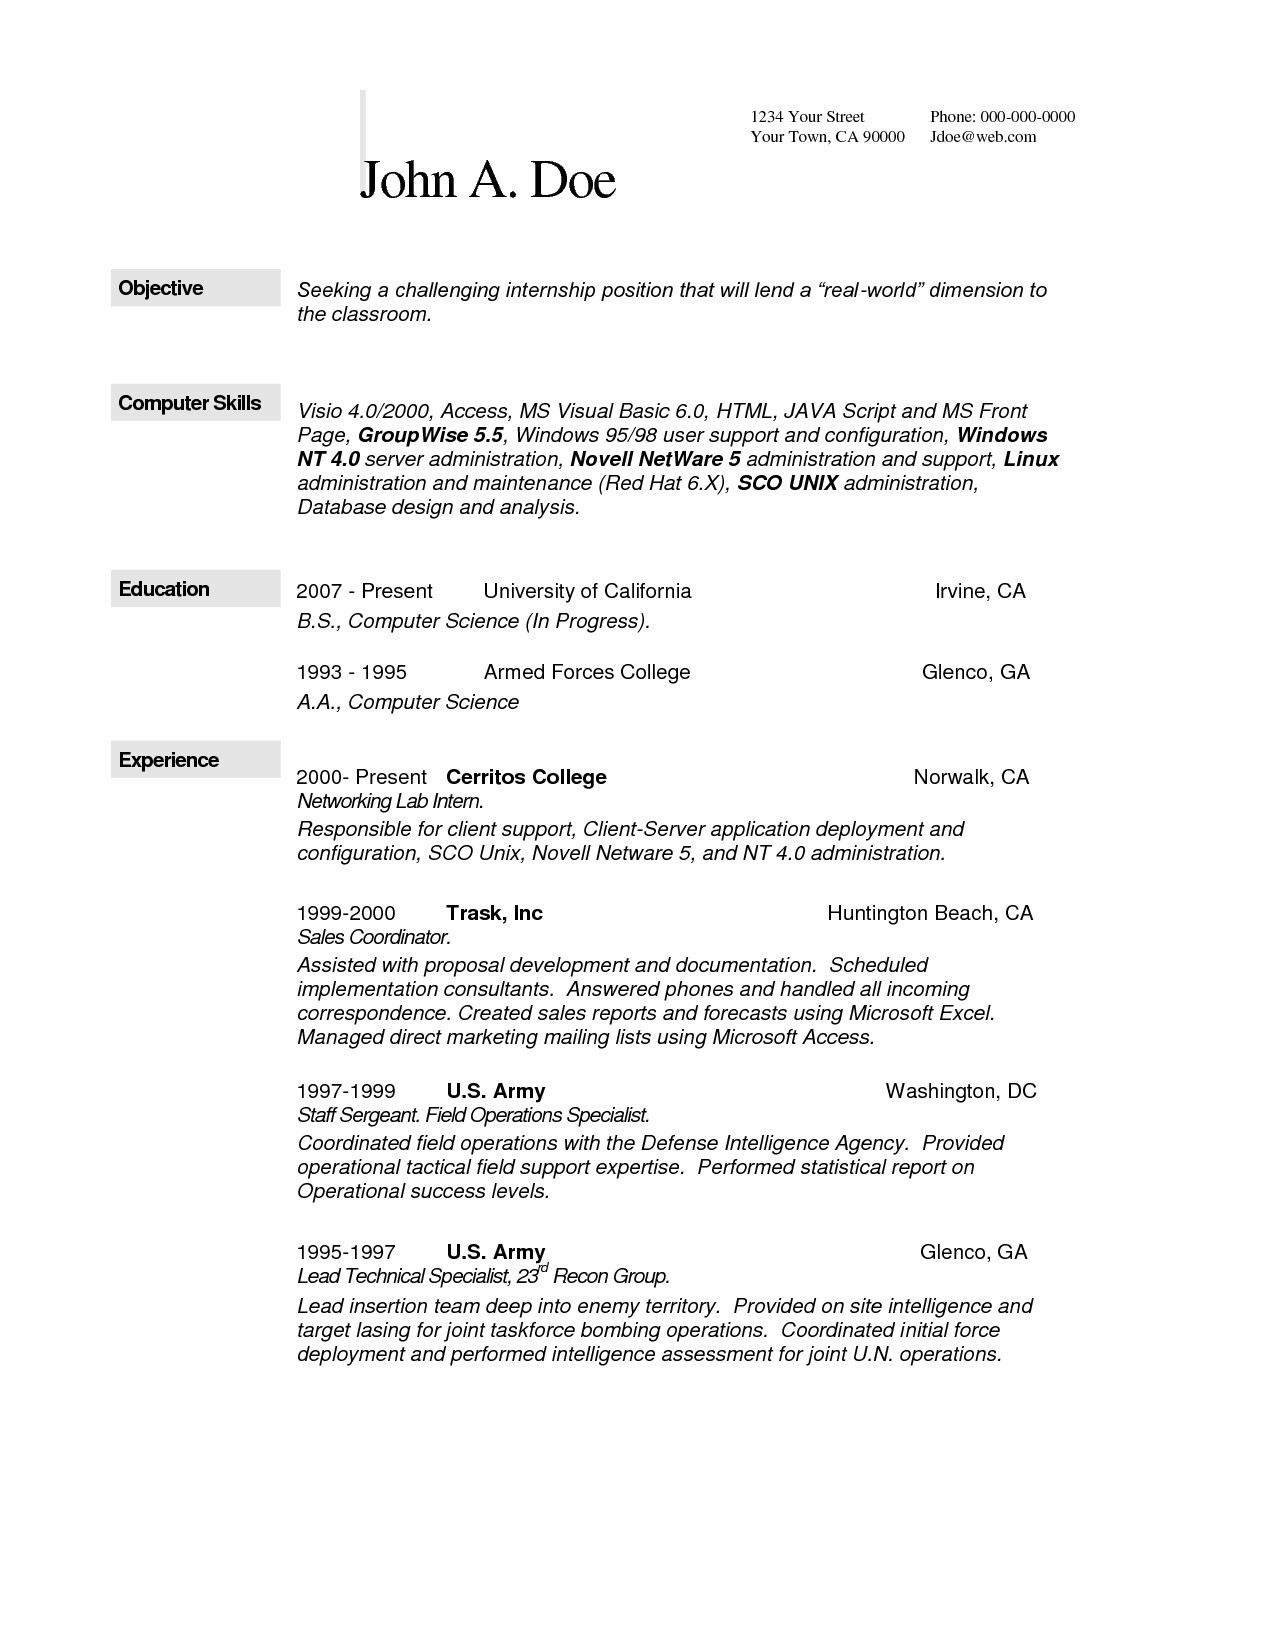 Science Resume Template - Awesome Omputer Science Resume Example